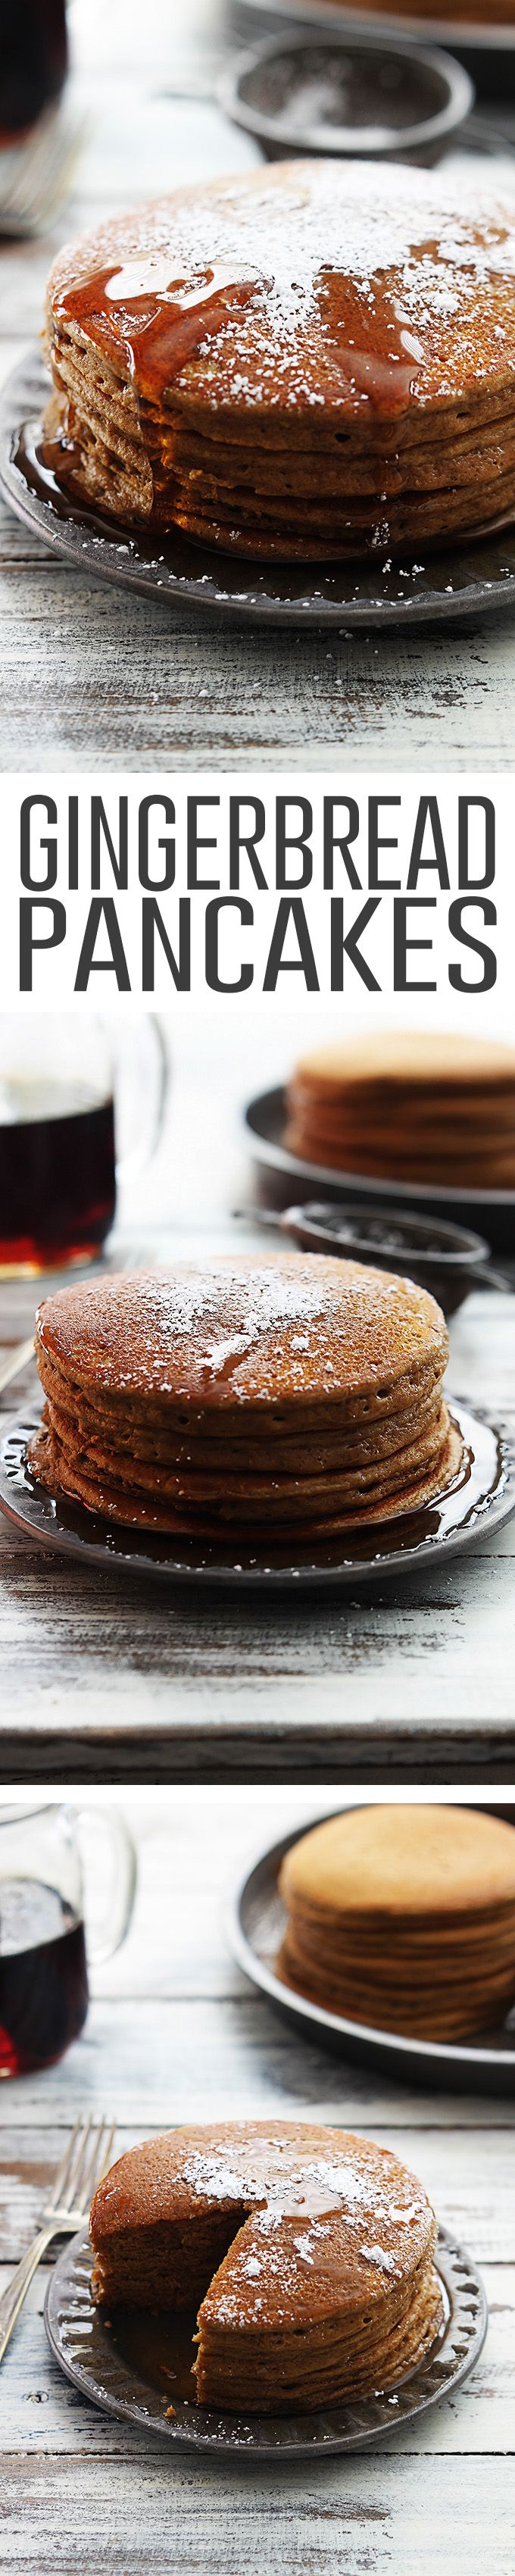 Fluffy gingerbread pancakes with cinnamon maple syrup | Grab your ingredients from the Co-operative today | http://www.centralengland.coop/